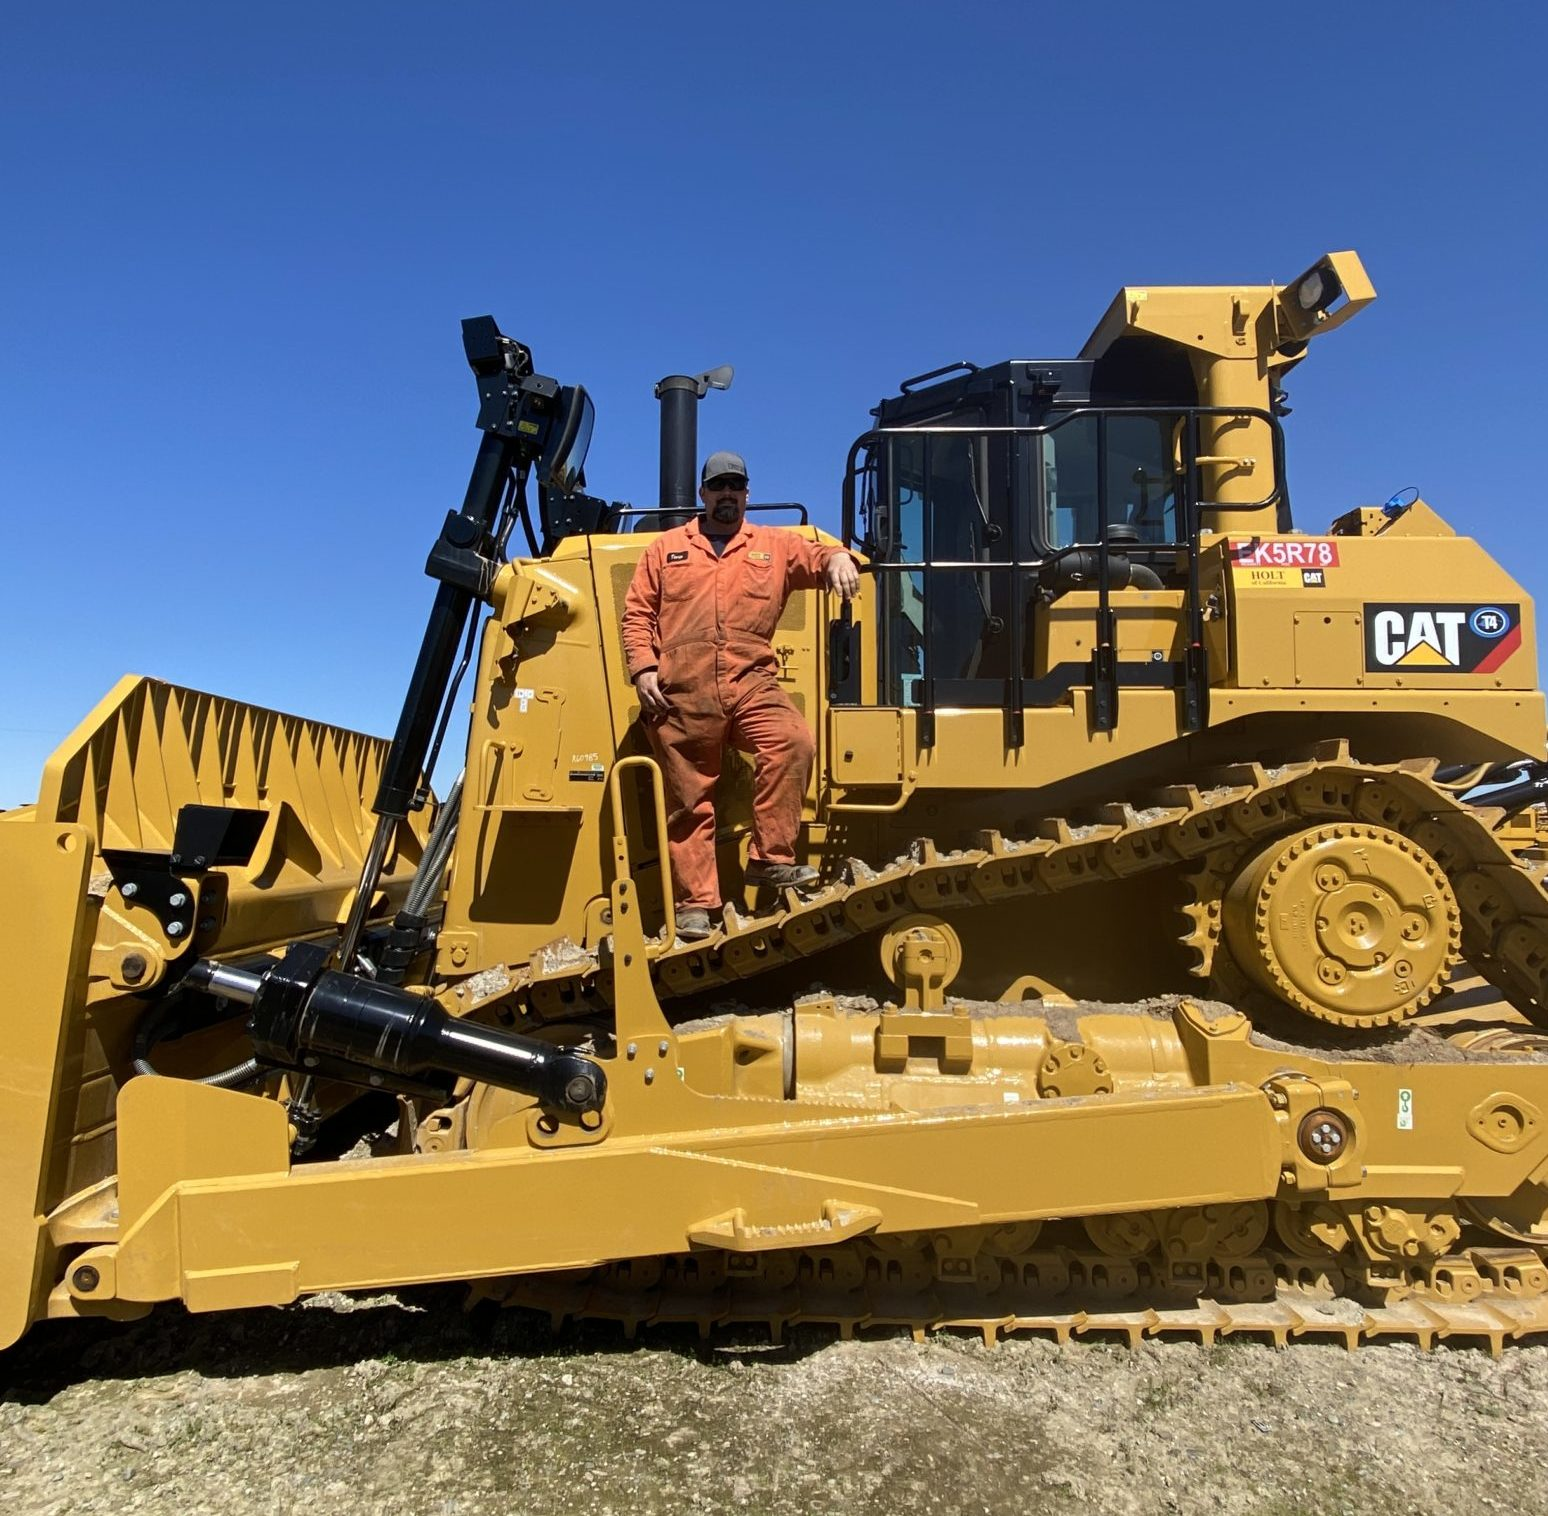 Thomas Mitchell posing on a piece of heavy machinery